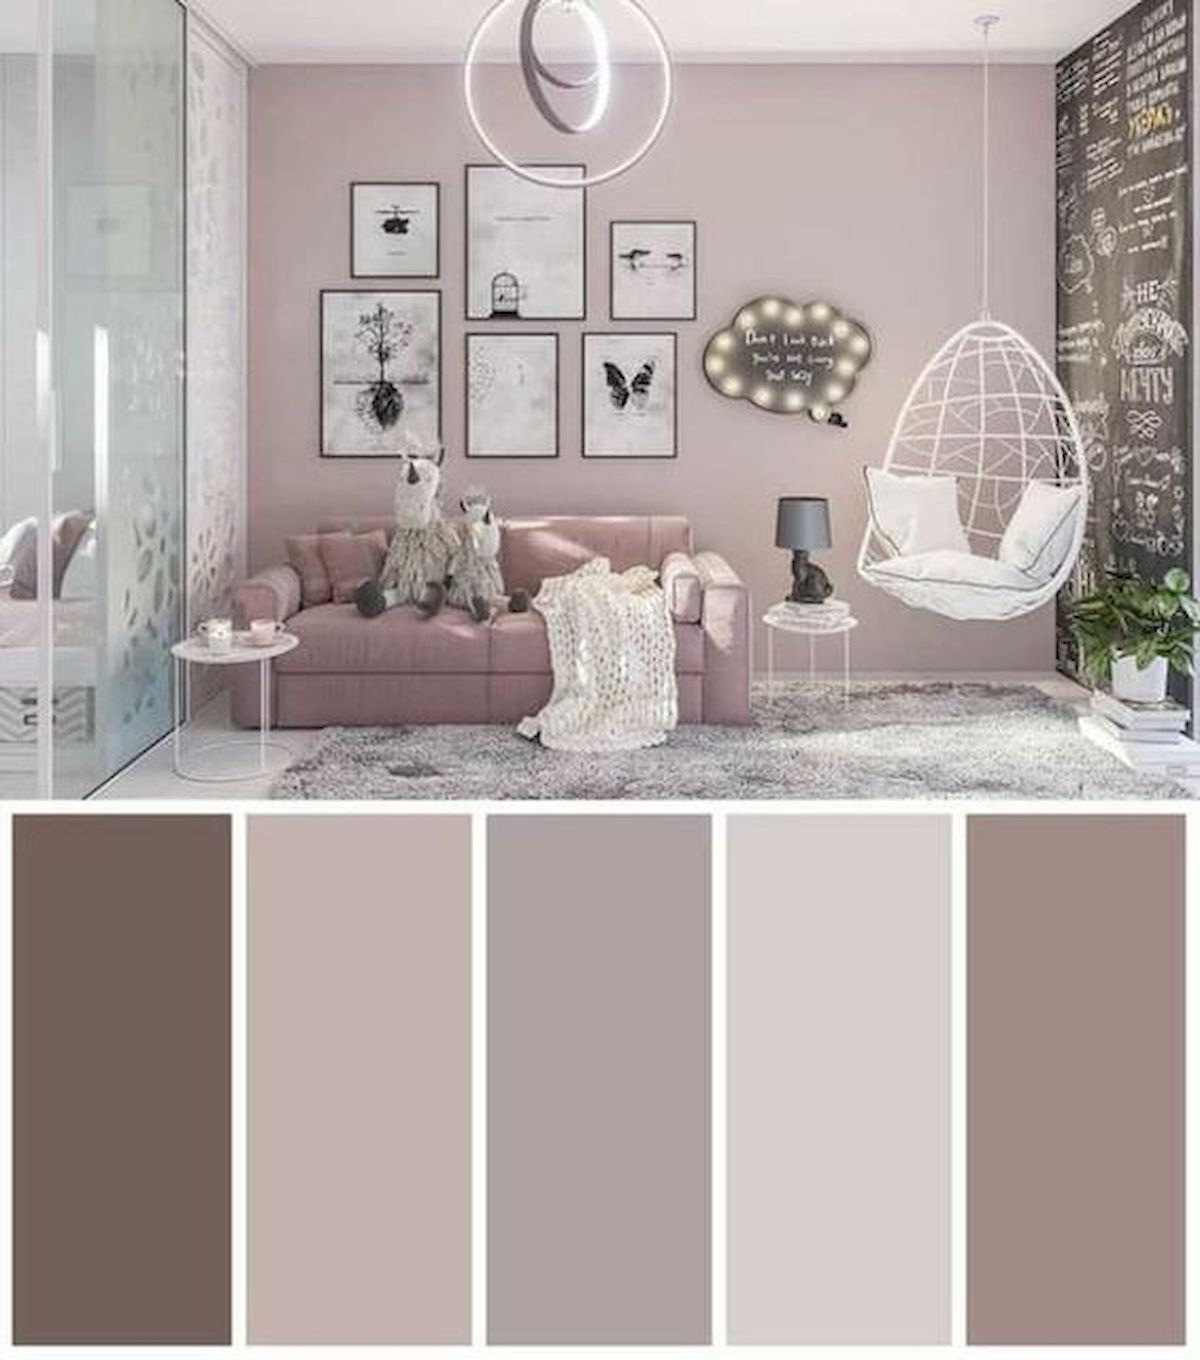 40 Gorgeous Living Room Color Schemes Ideas (14) - house8055.com